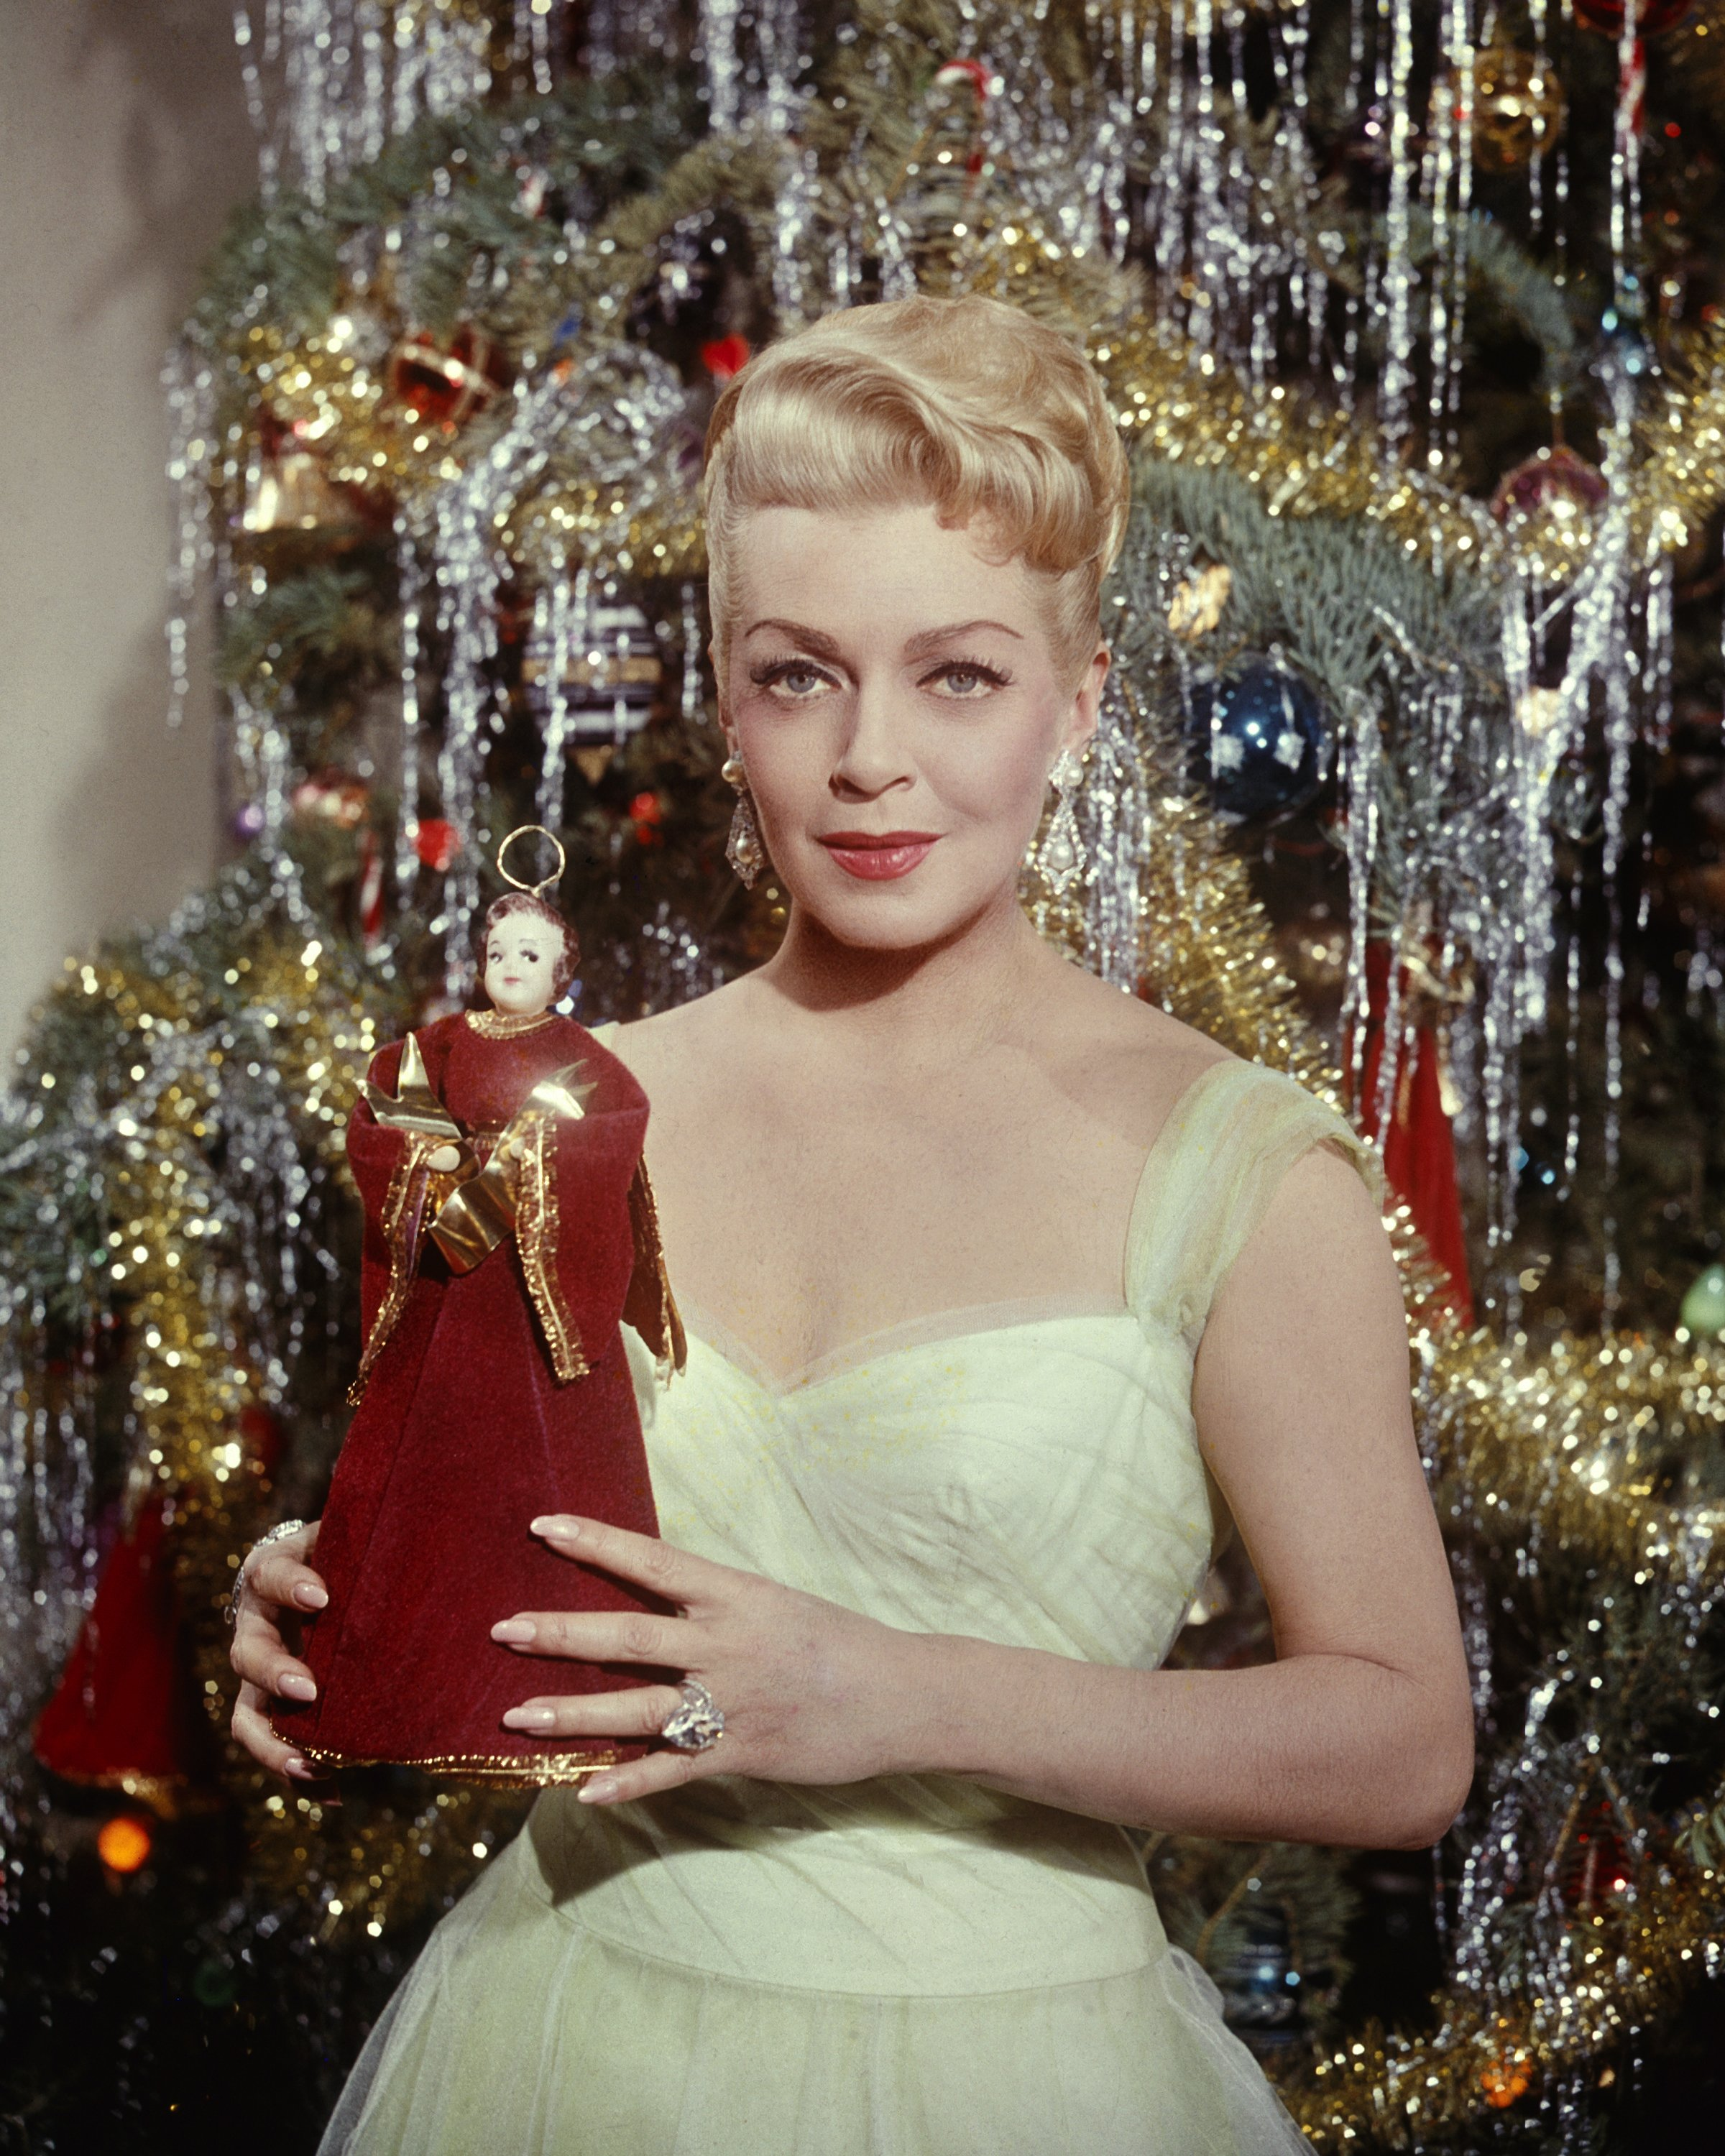 American actress Lana Turner (1921 - 1995) holding the angel from the top of a Christmas tree, circa 1965.| Source: Getty Images